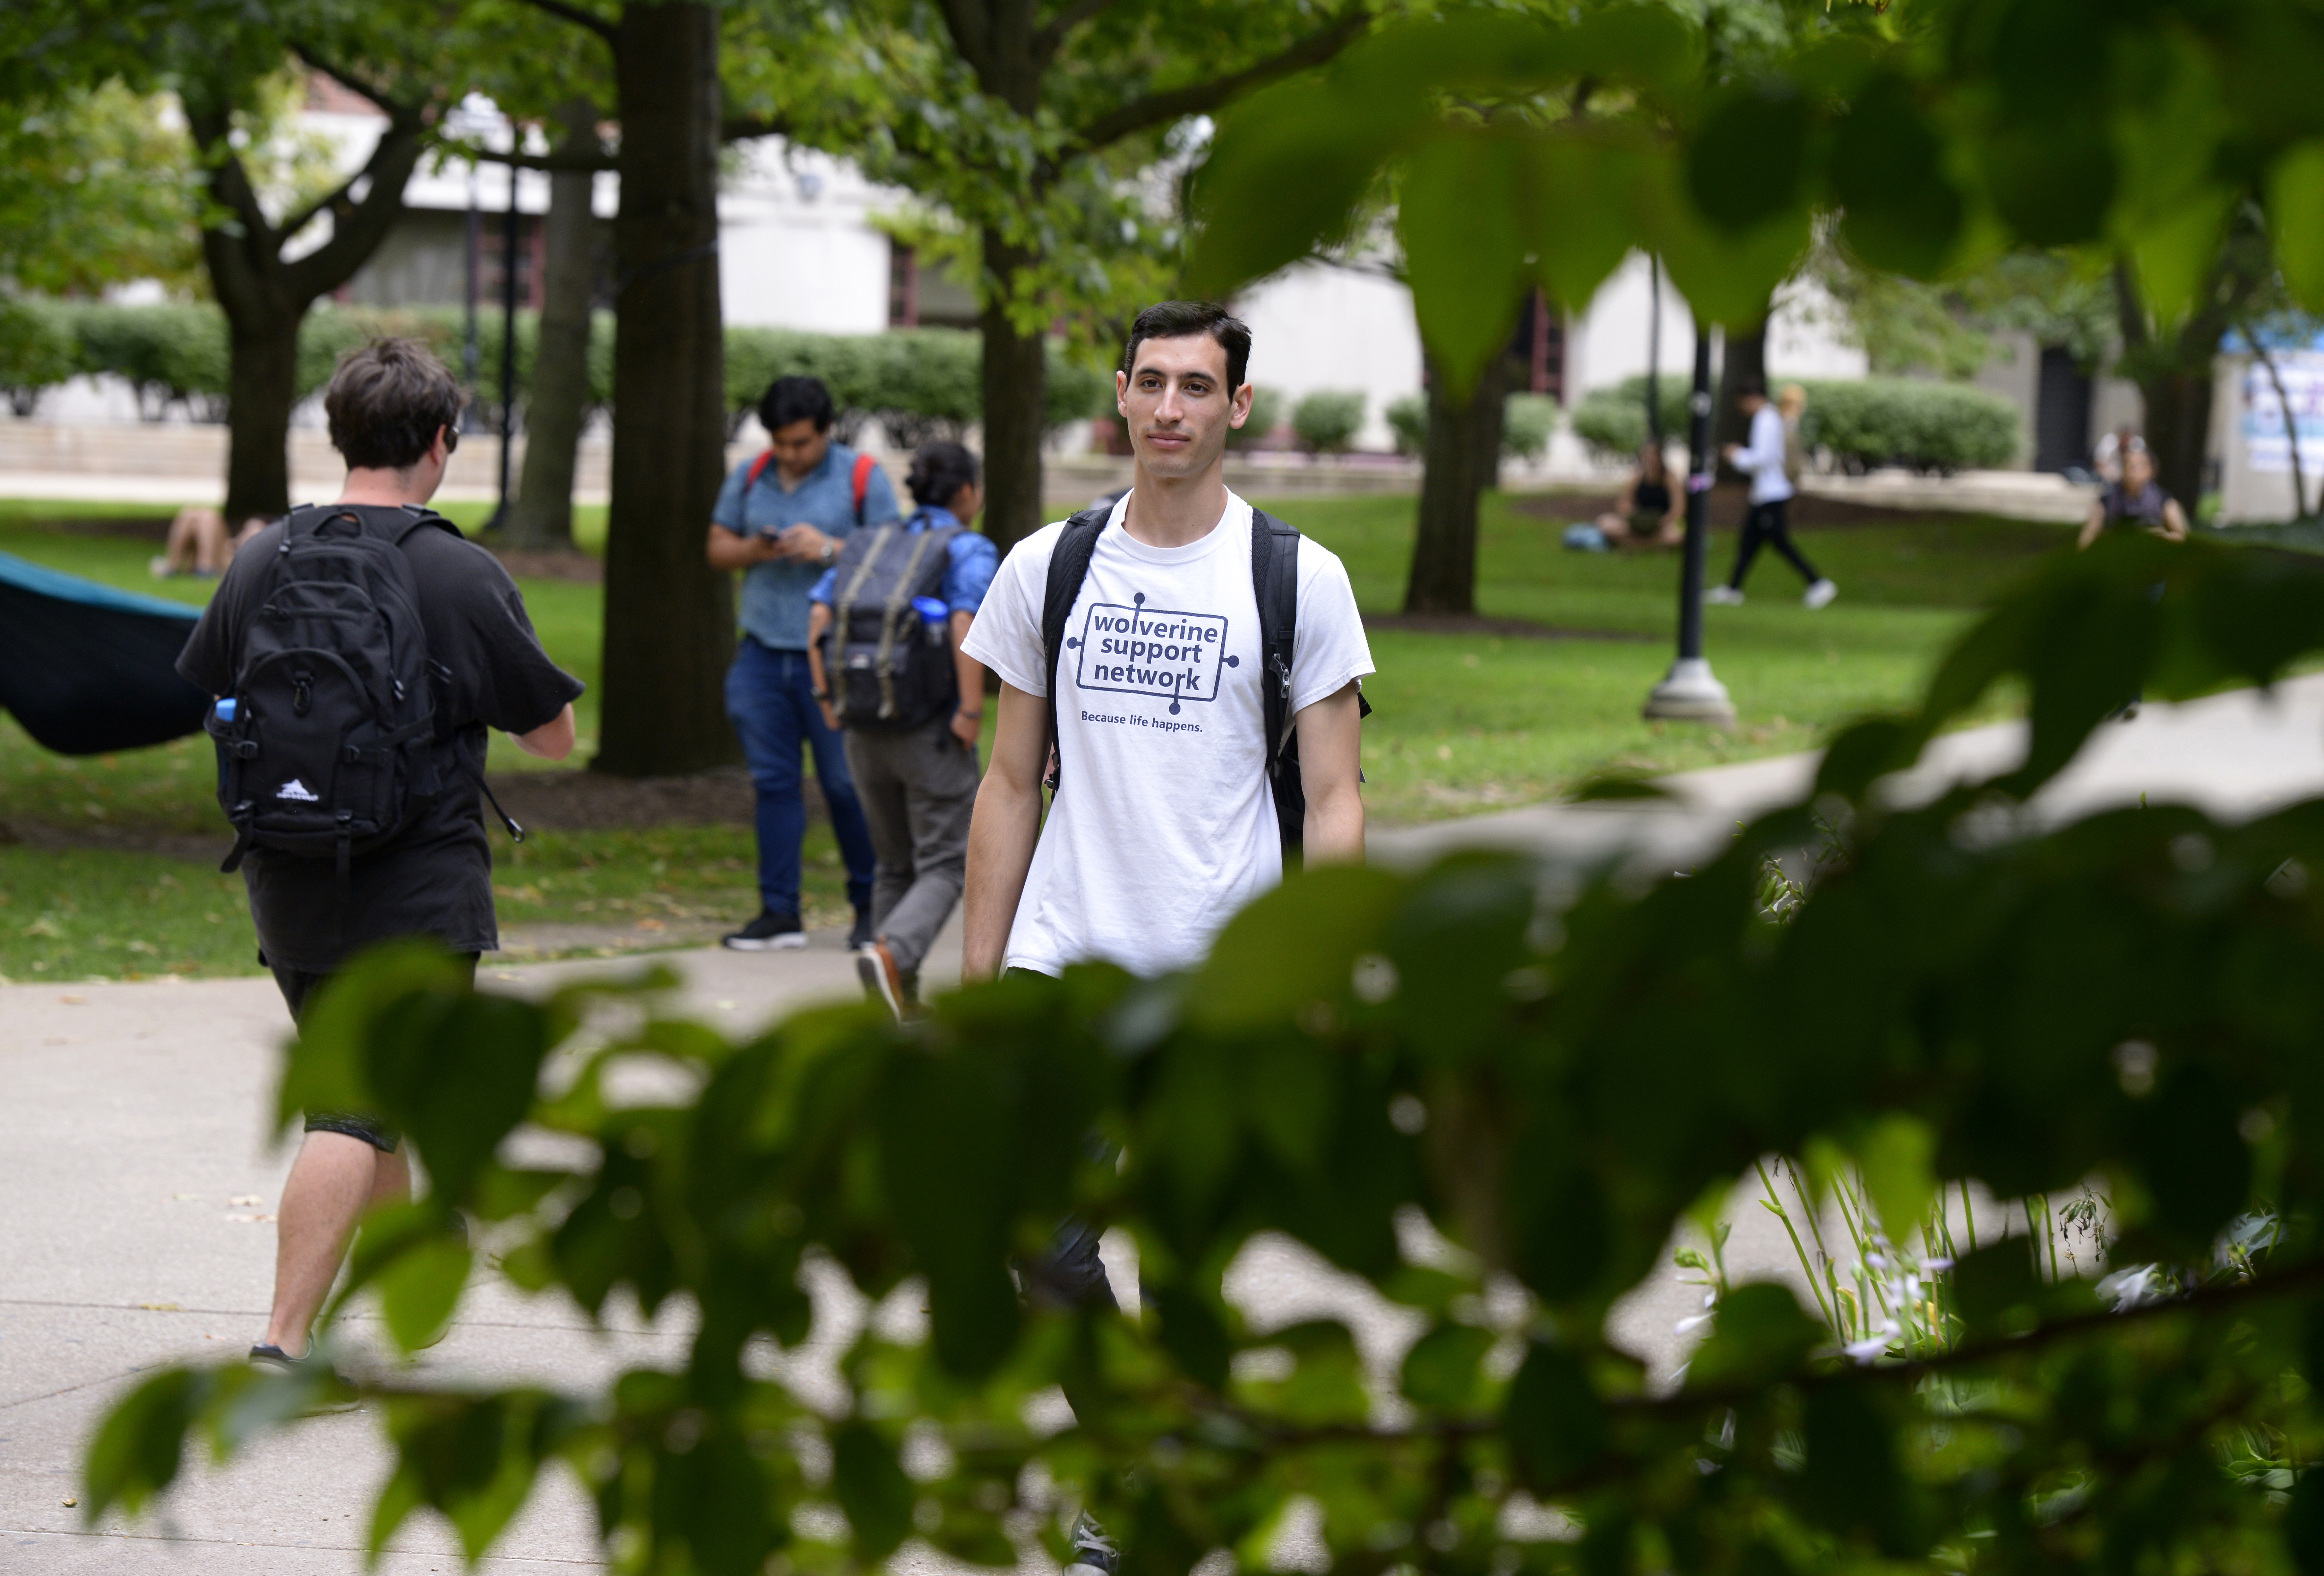 University of Michigan senior and Wolverine Support Network Executive Director Jordan Lazarus walks on campus at the school in Ann Arbor, Mich., on Wednesday, Sept. 12, 2018. The peer-to-peer group is designed to empower students to create a safe communit